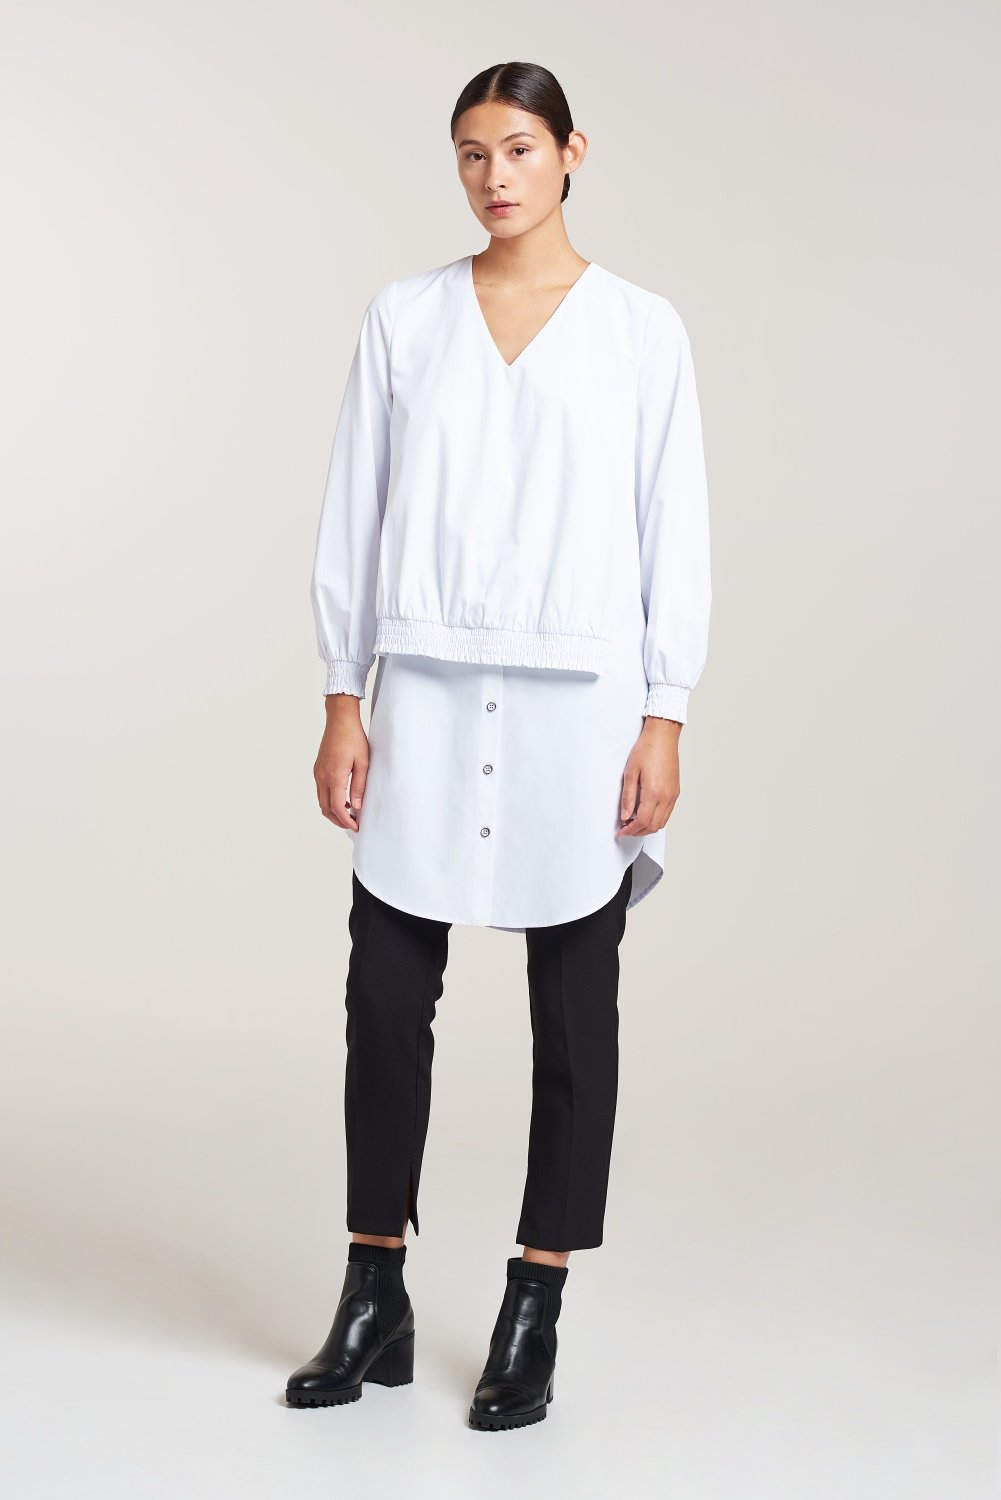 Palones White Smocking Elastic Shirt Dress